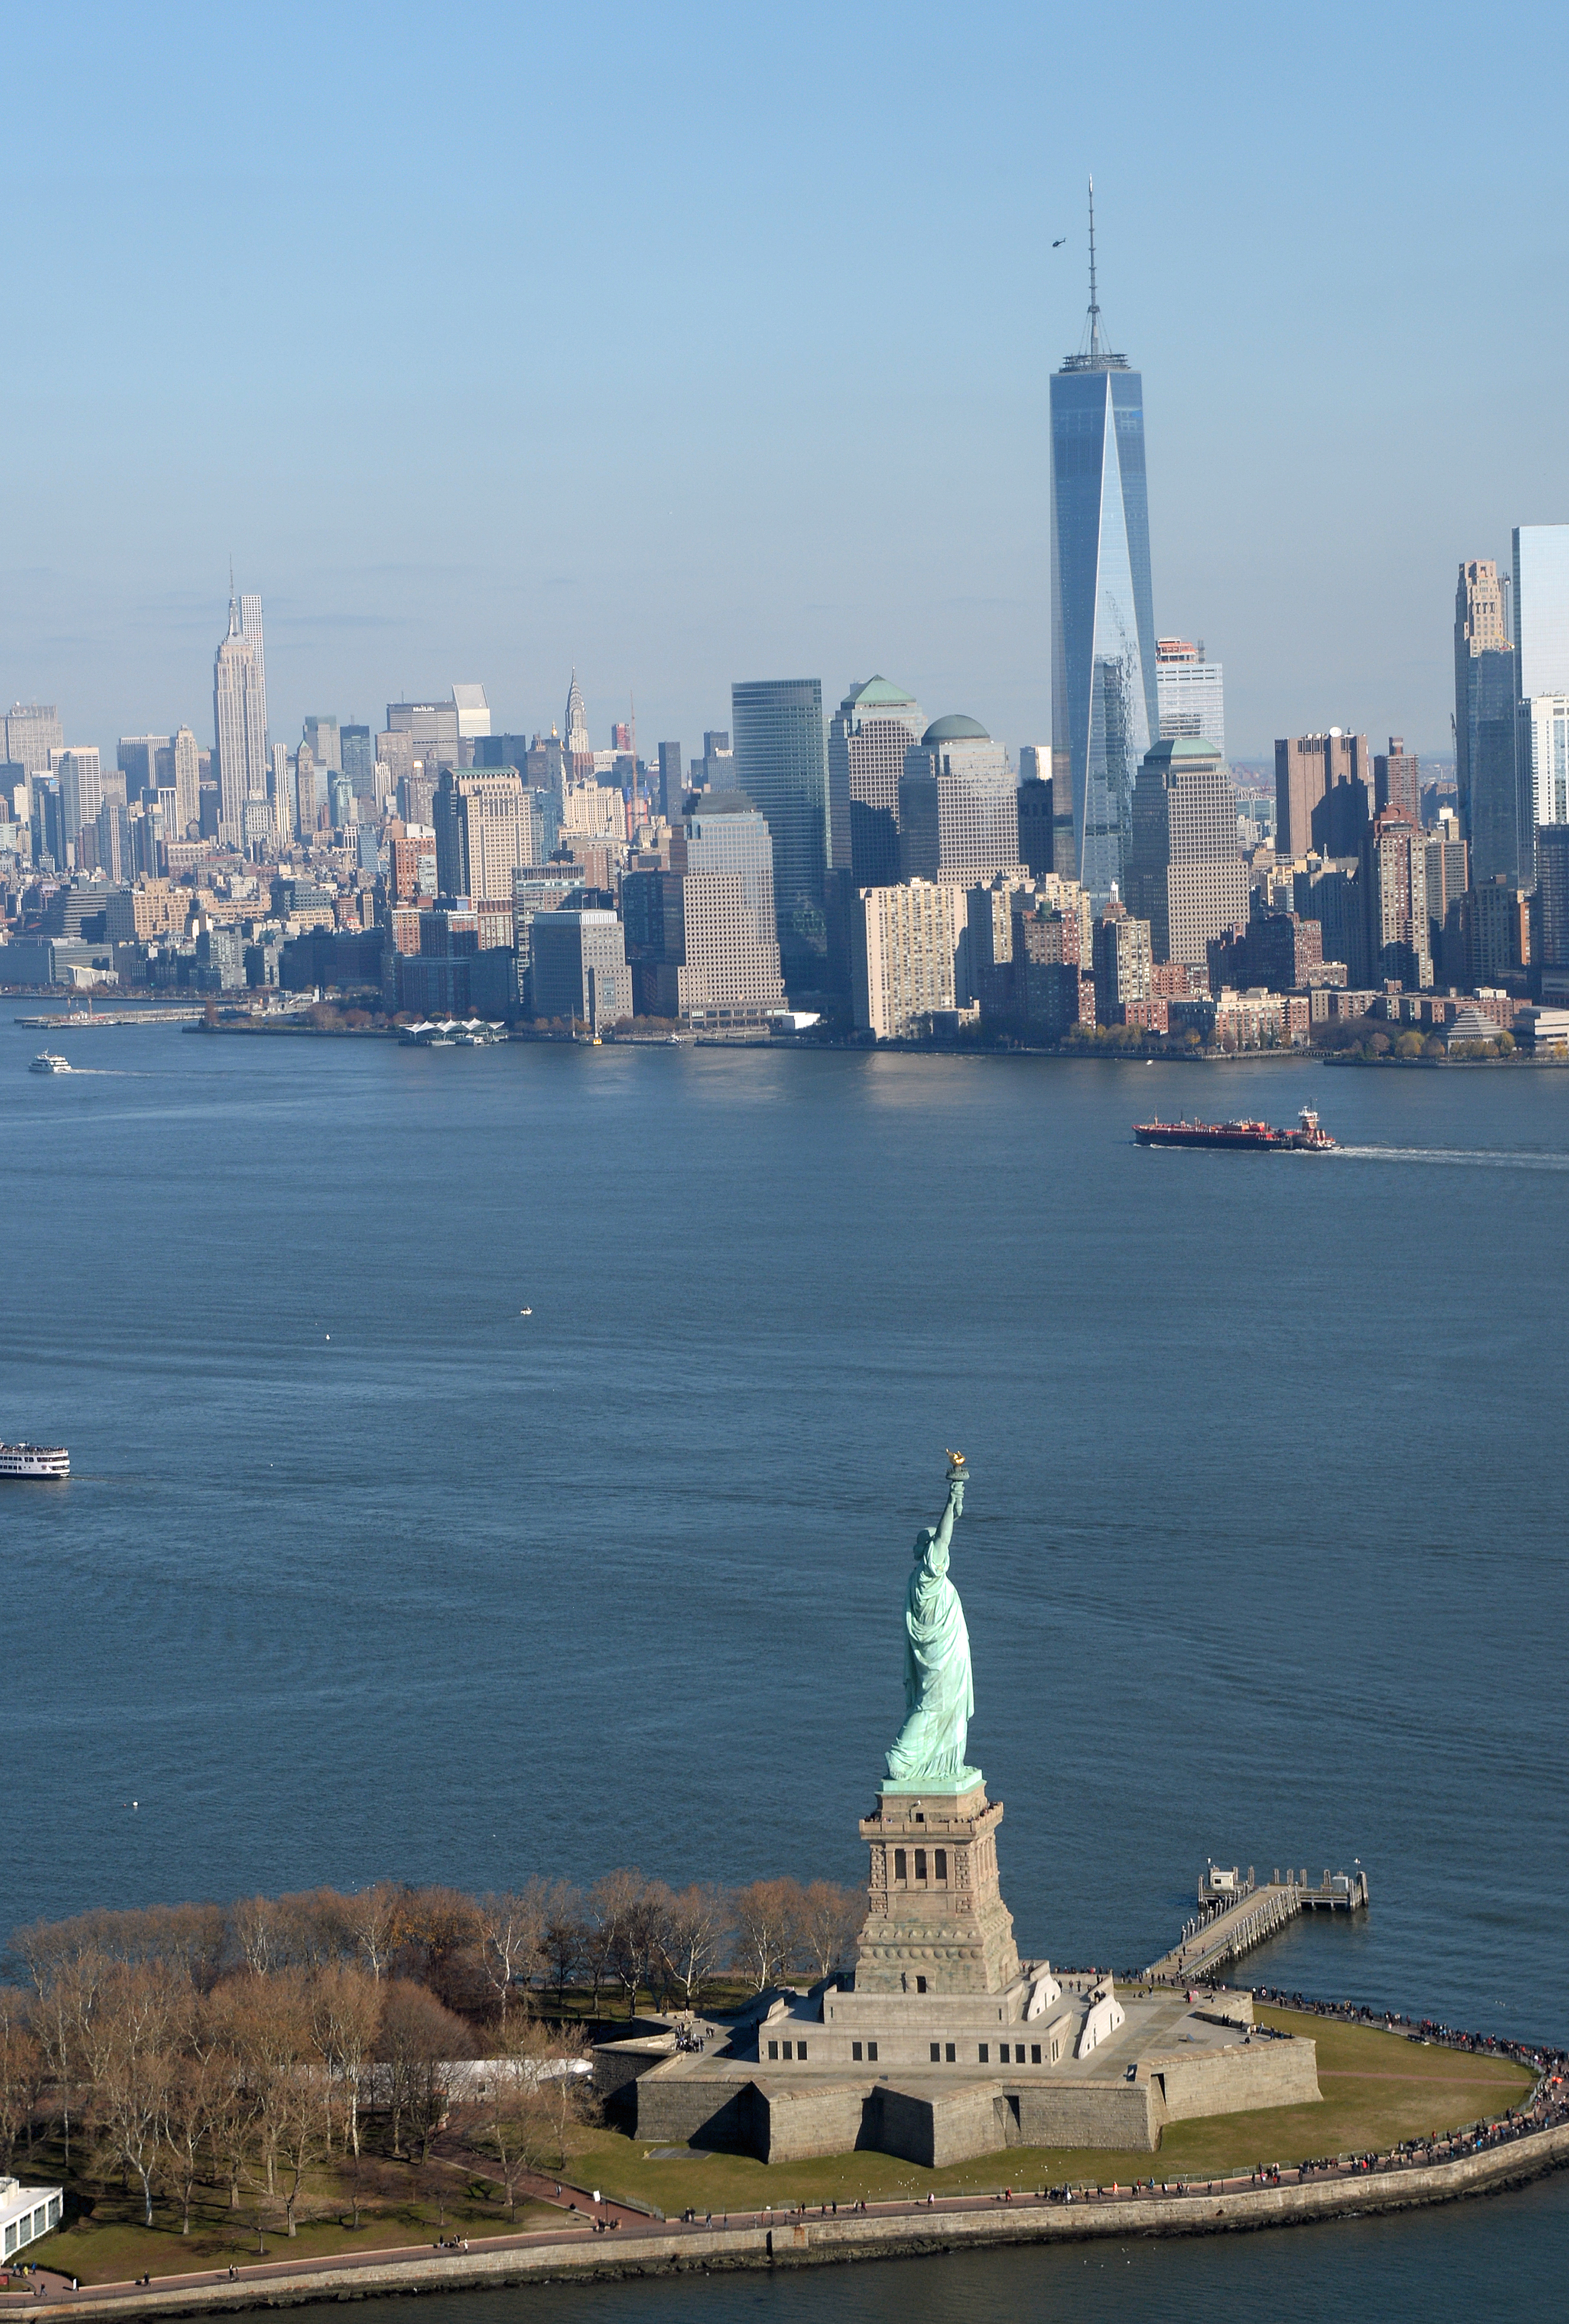 Taking a NYC helicopter tour